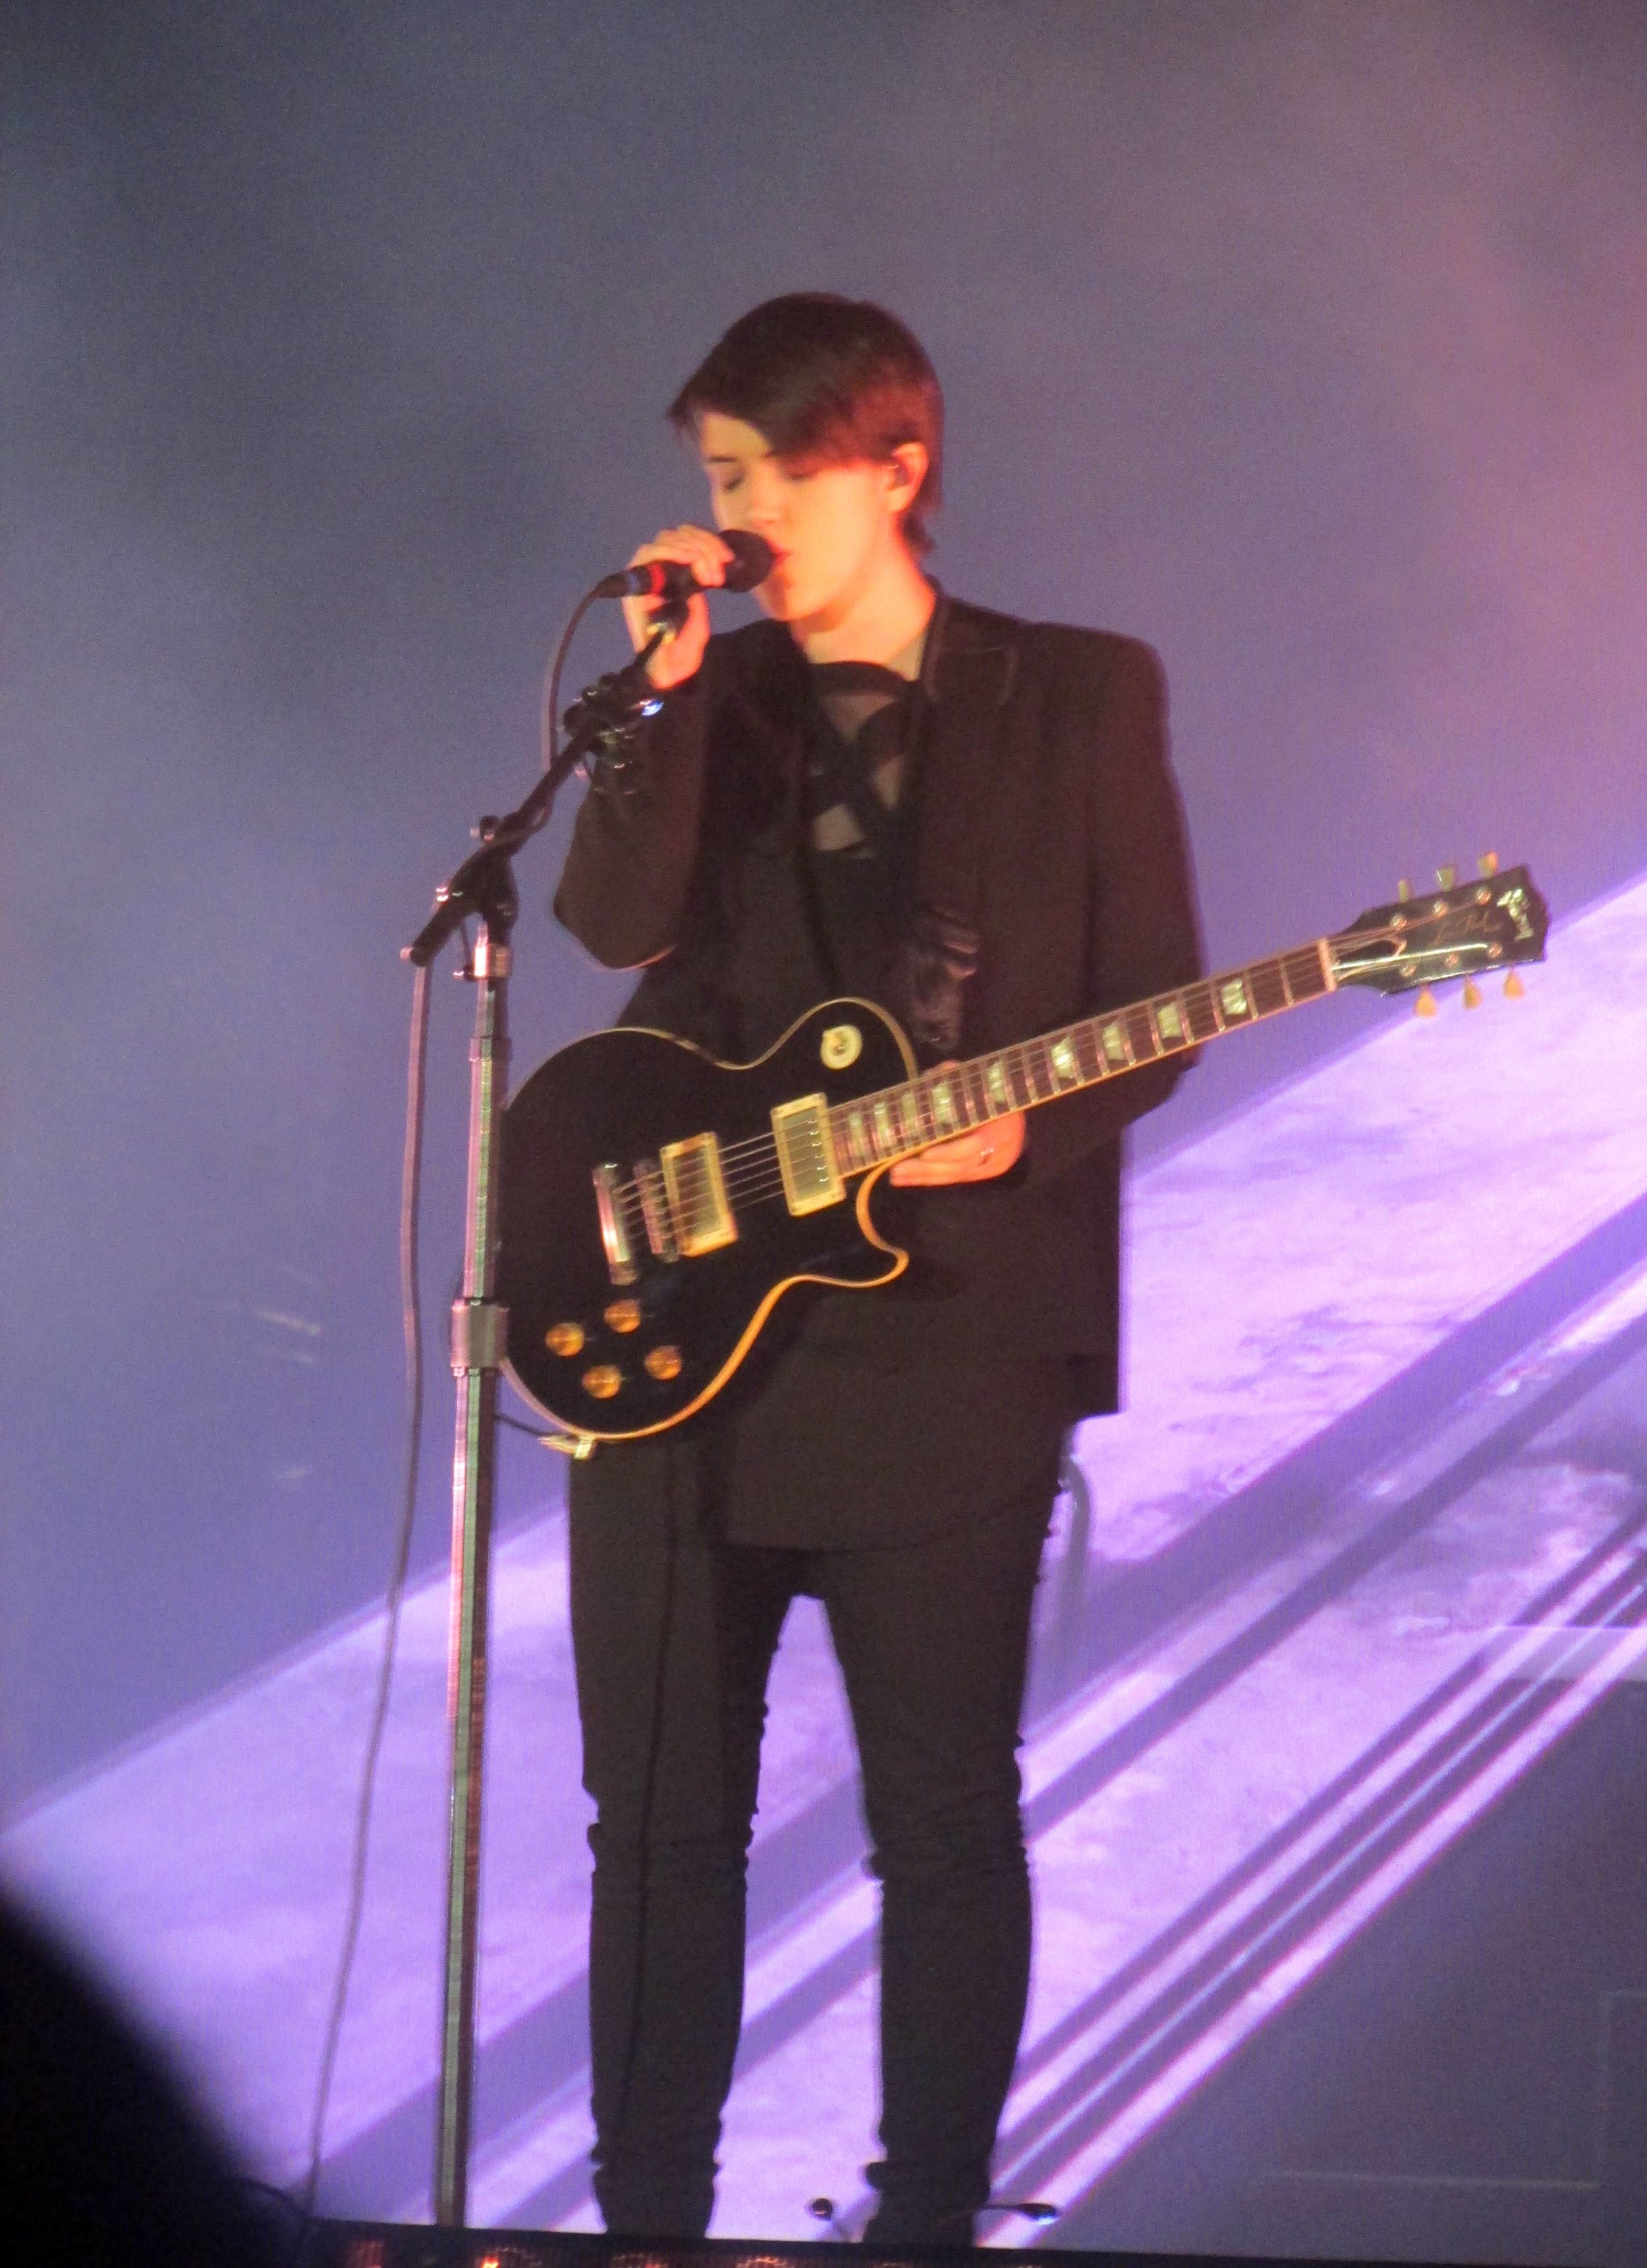 7 - Romy Madley Croft, guitarist and co-vocalist for The xx.JPG